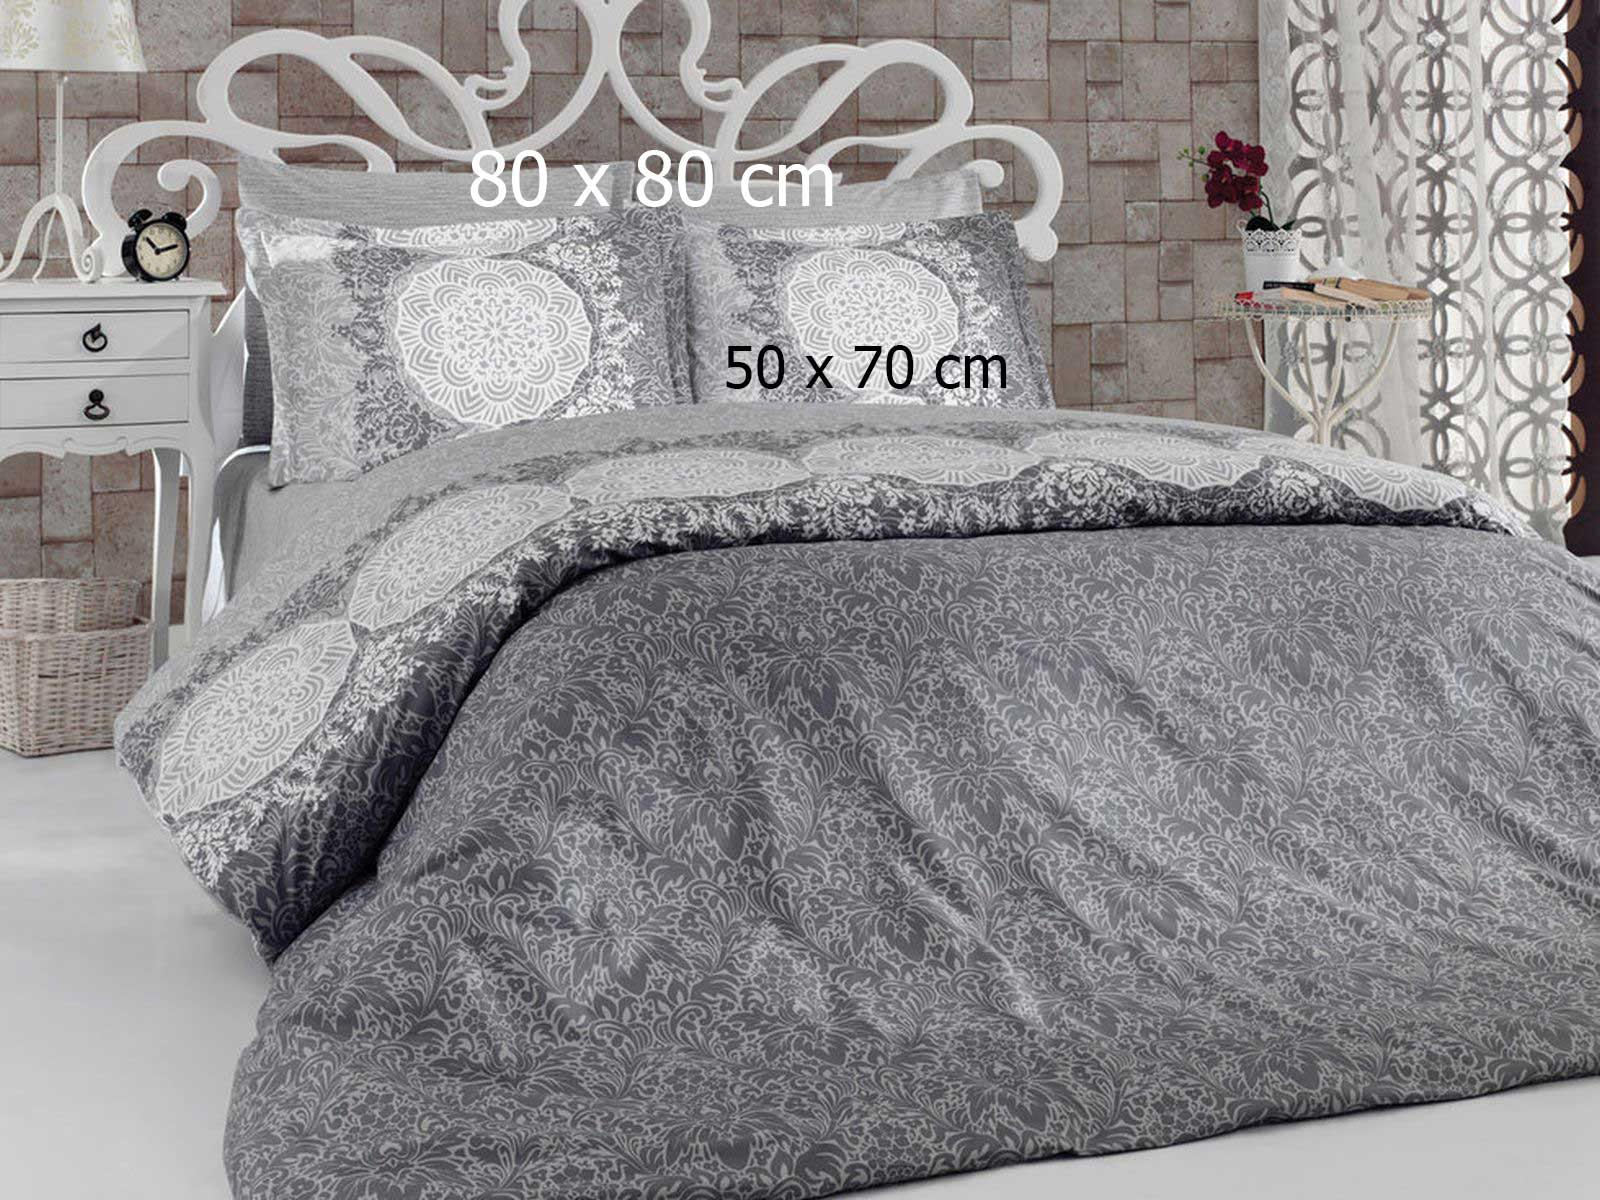 6 tlg bettw sche bettgarnitur 100 baumwolle kissen decke 200x220cm z mr t grau ebay. Black Bedroom Furniture Sets. Home Design Ideas